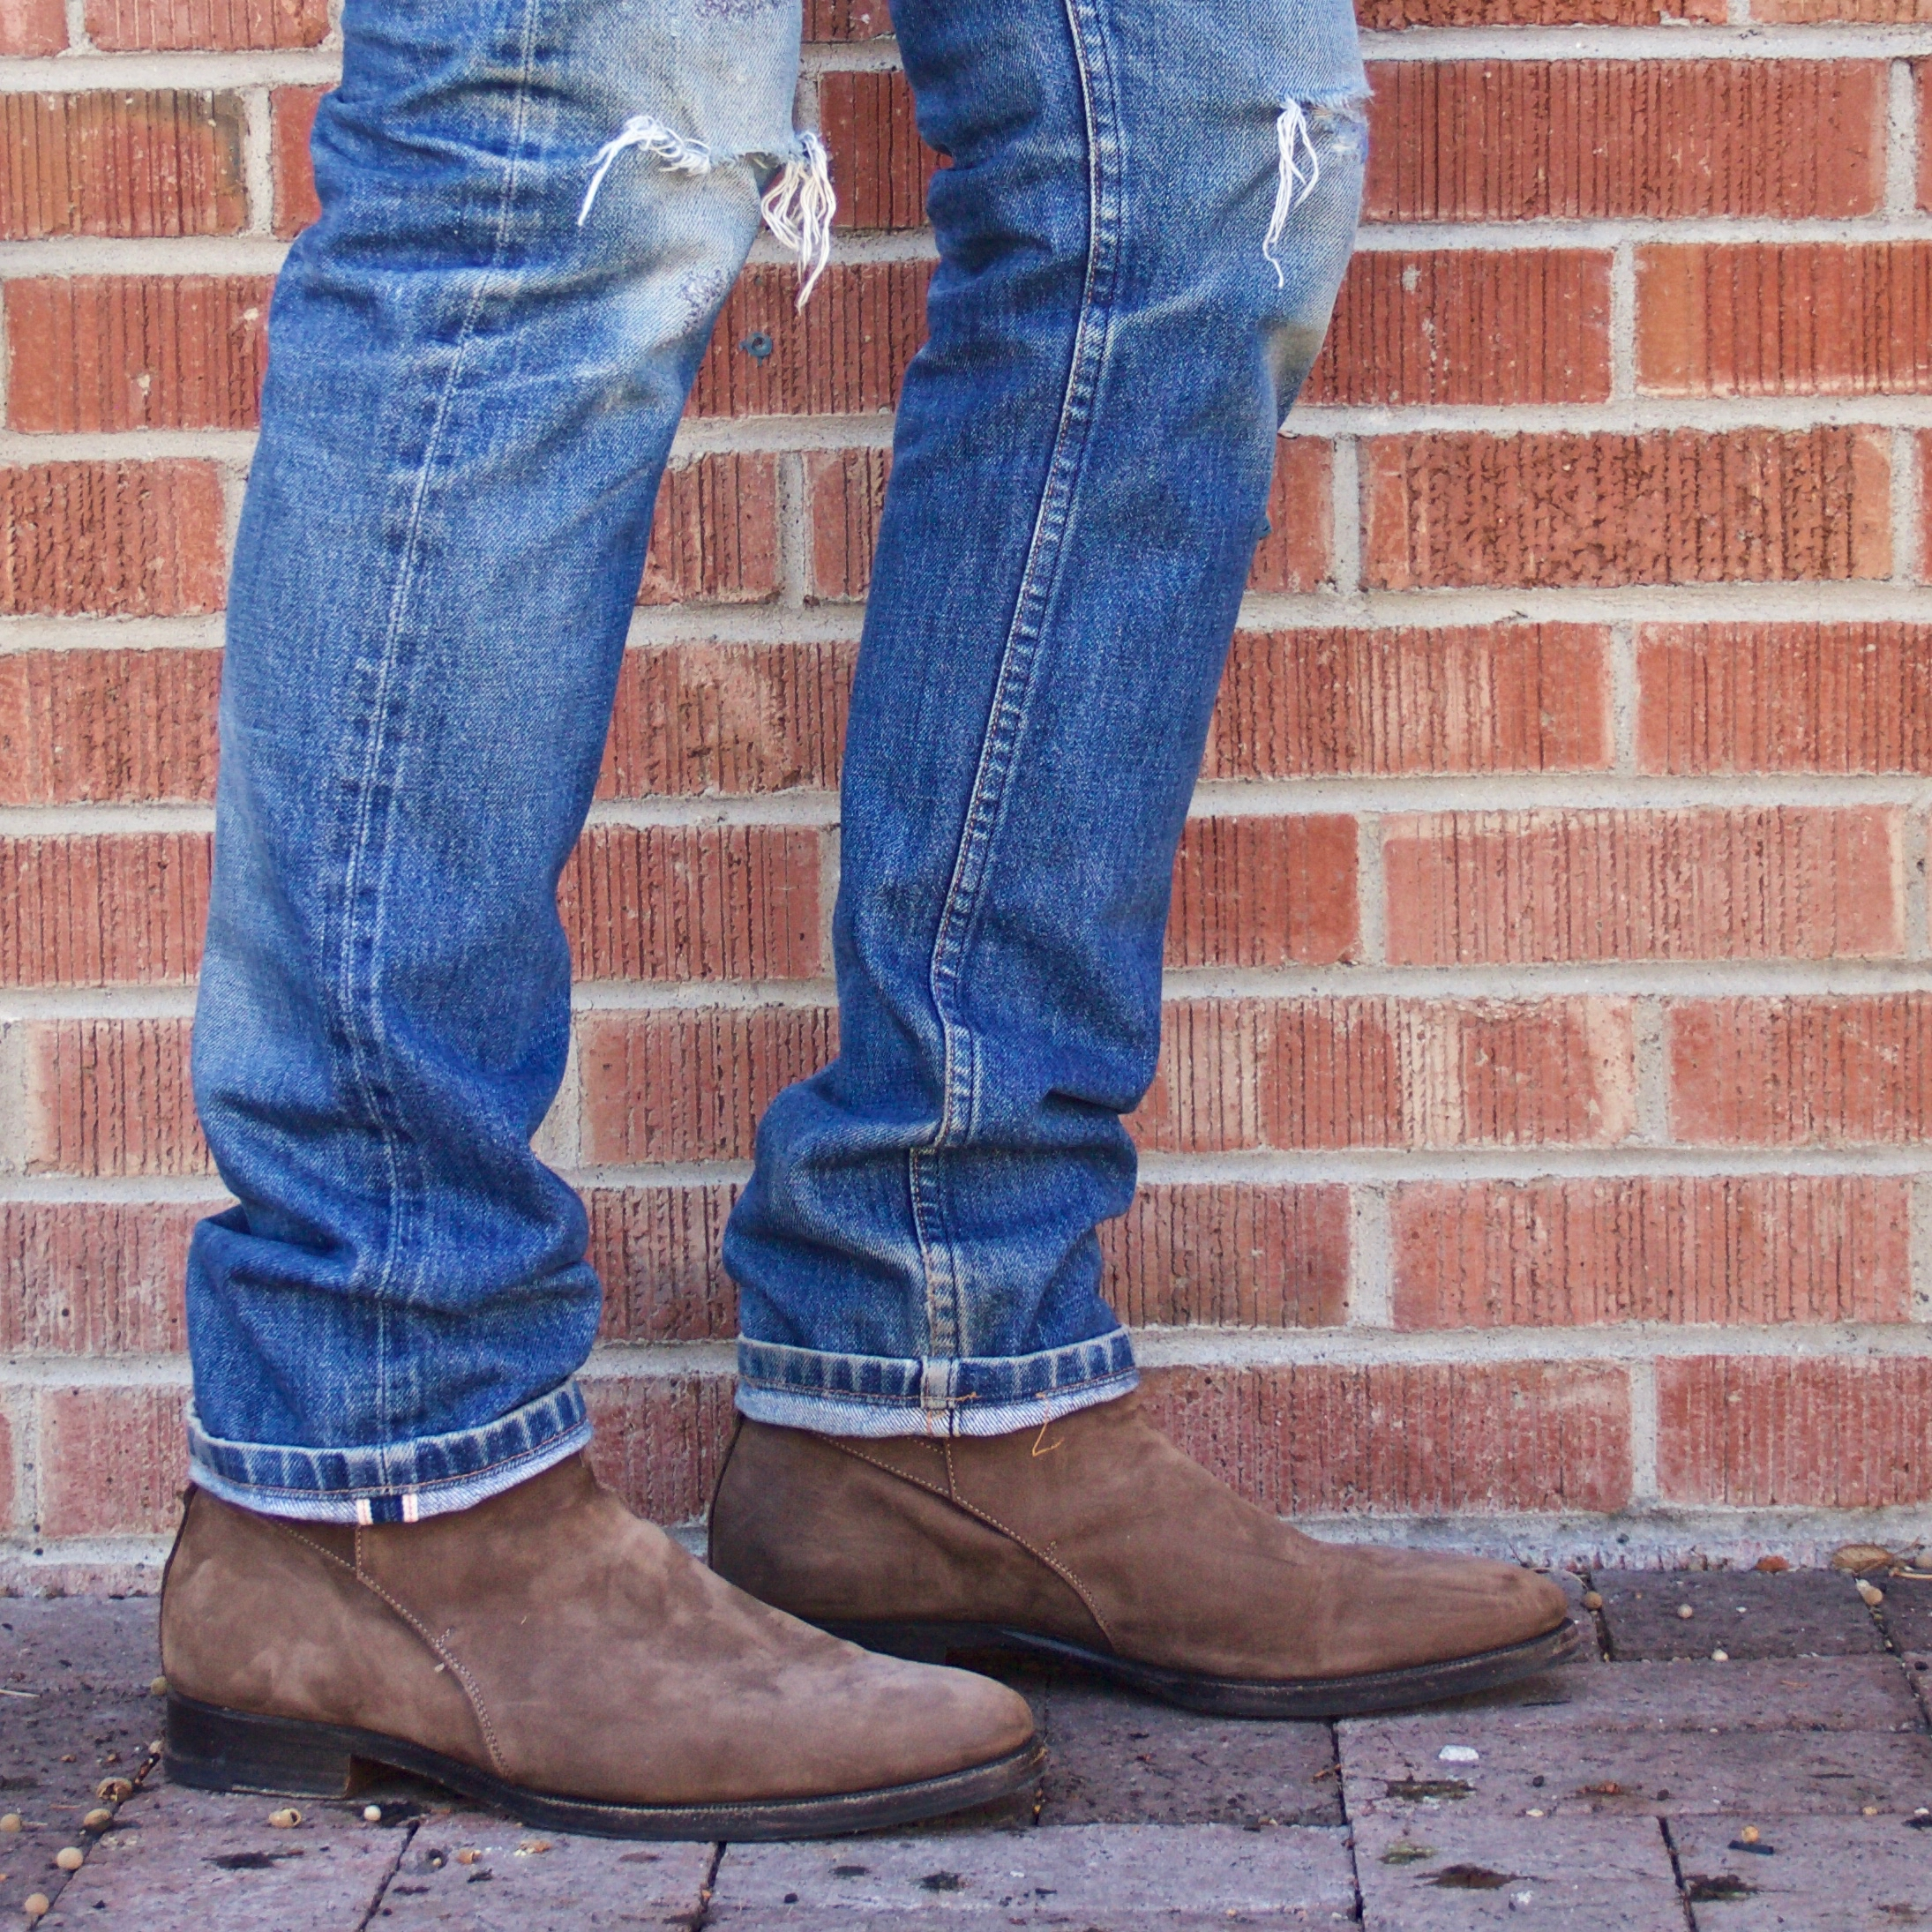 ways to wear boots with jeans